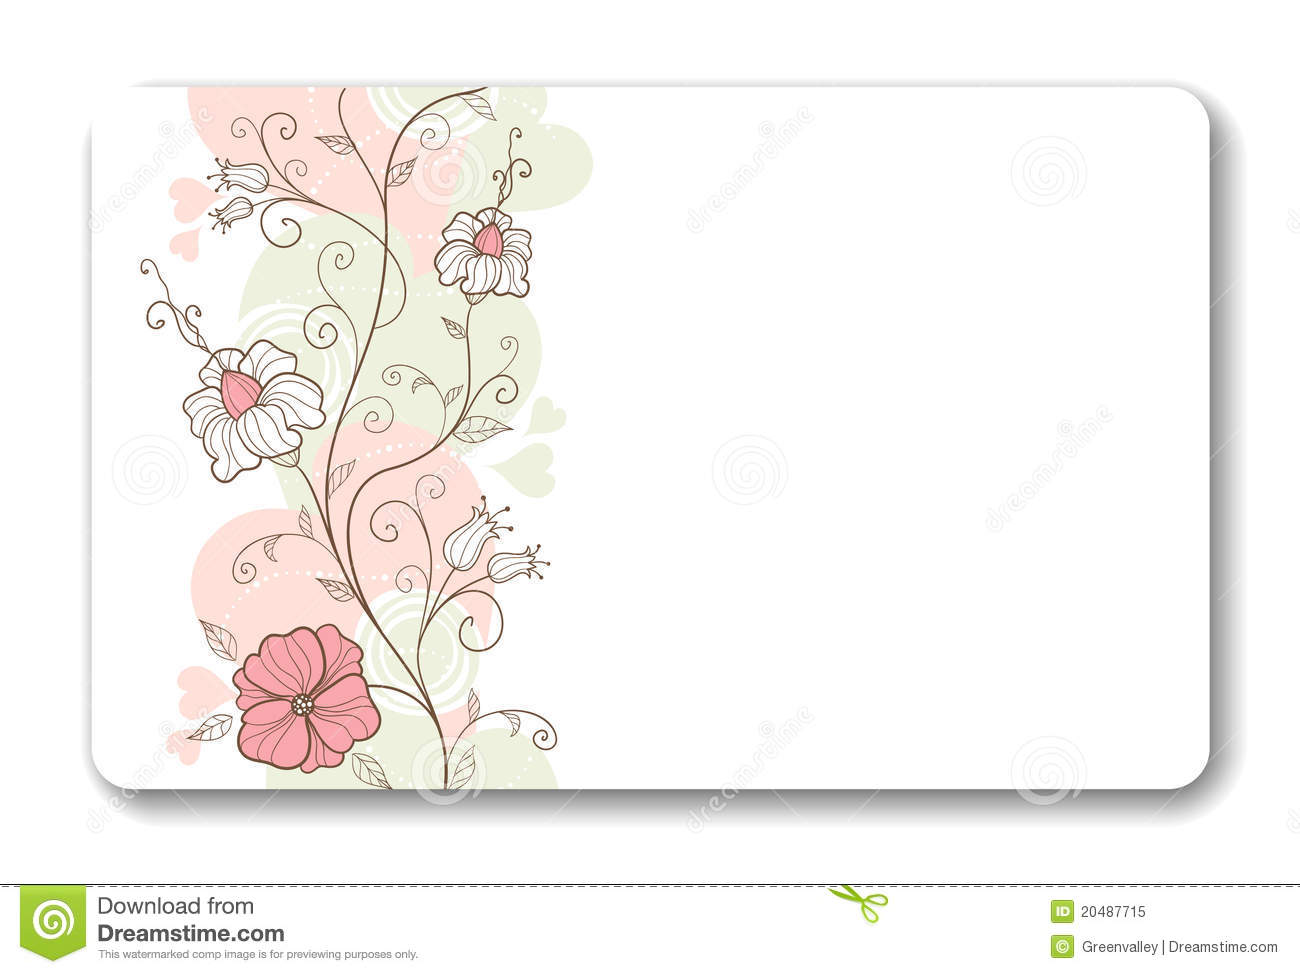 Business card background stock vector. Illustration of leaf - 20487715